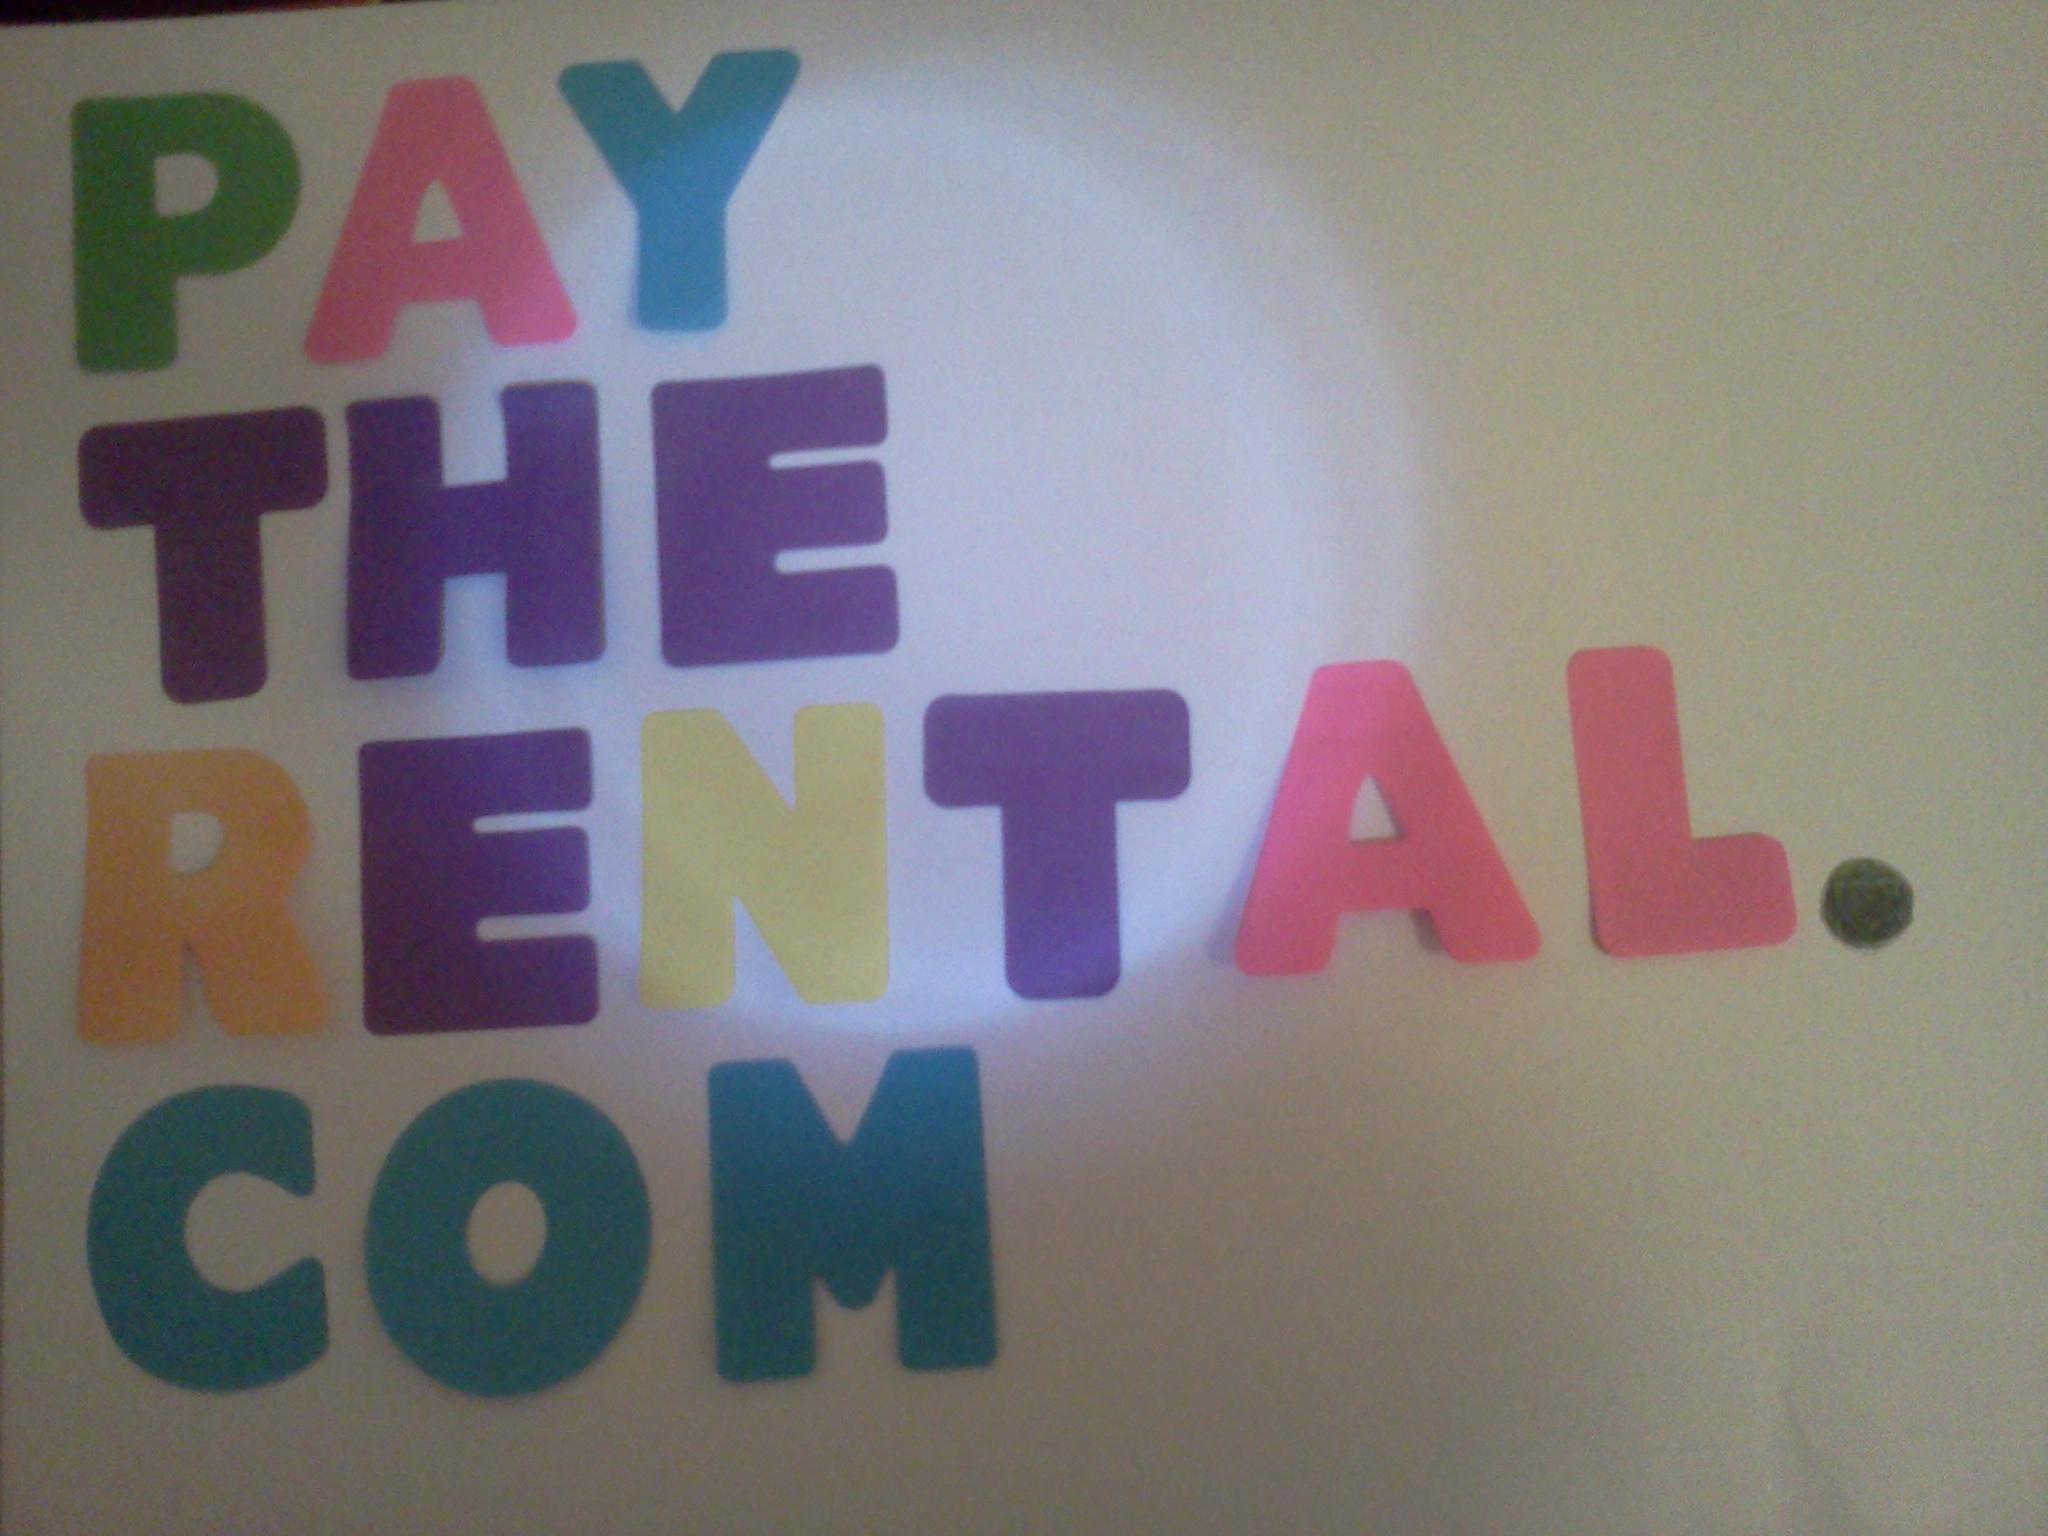 Pay The Rental